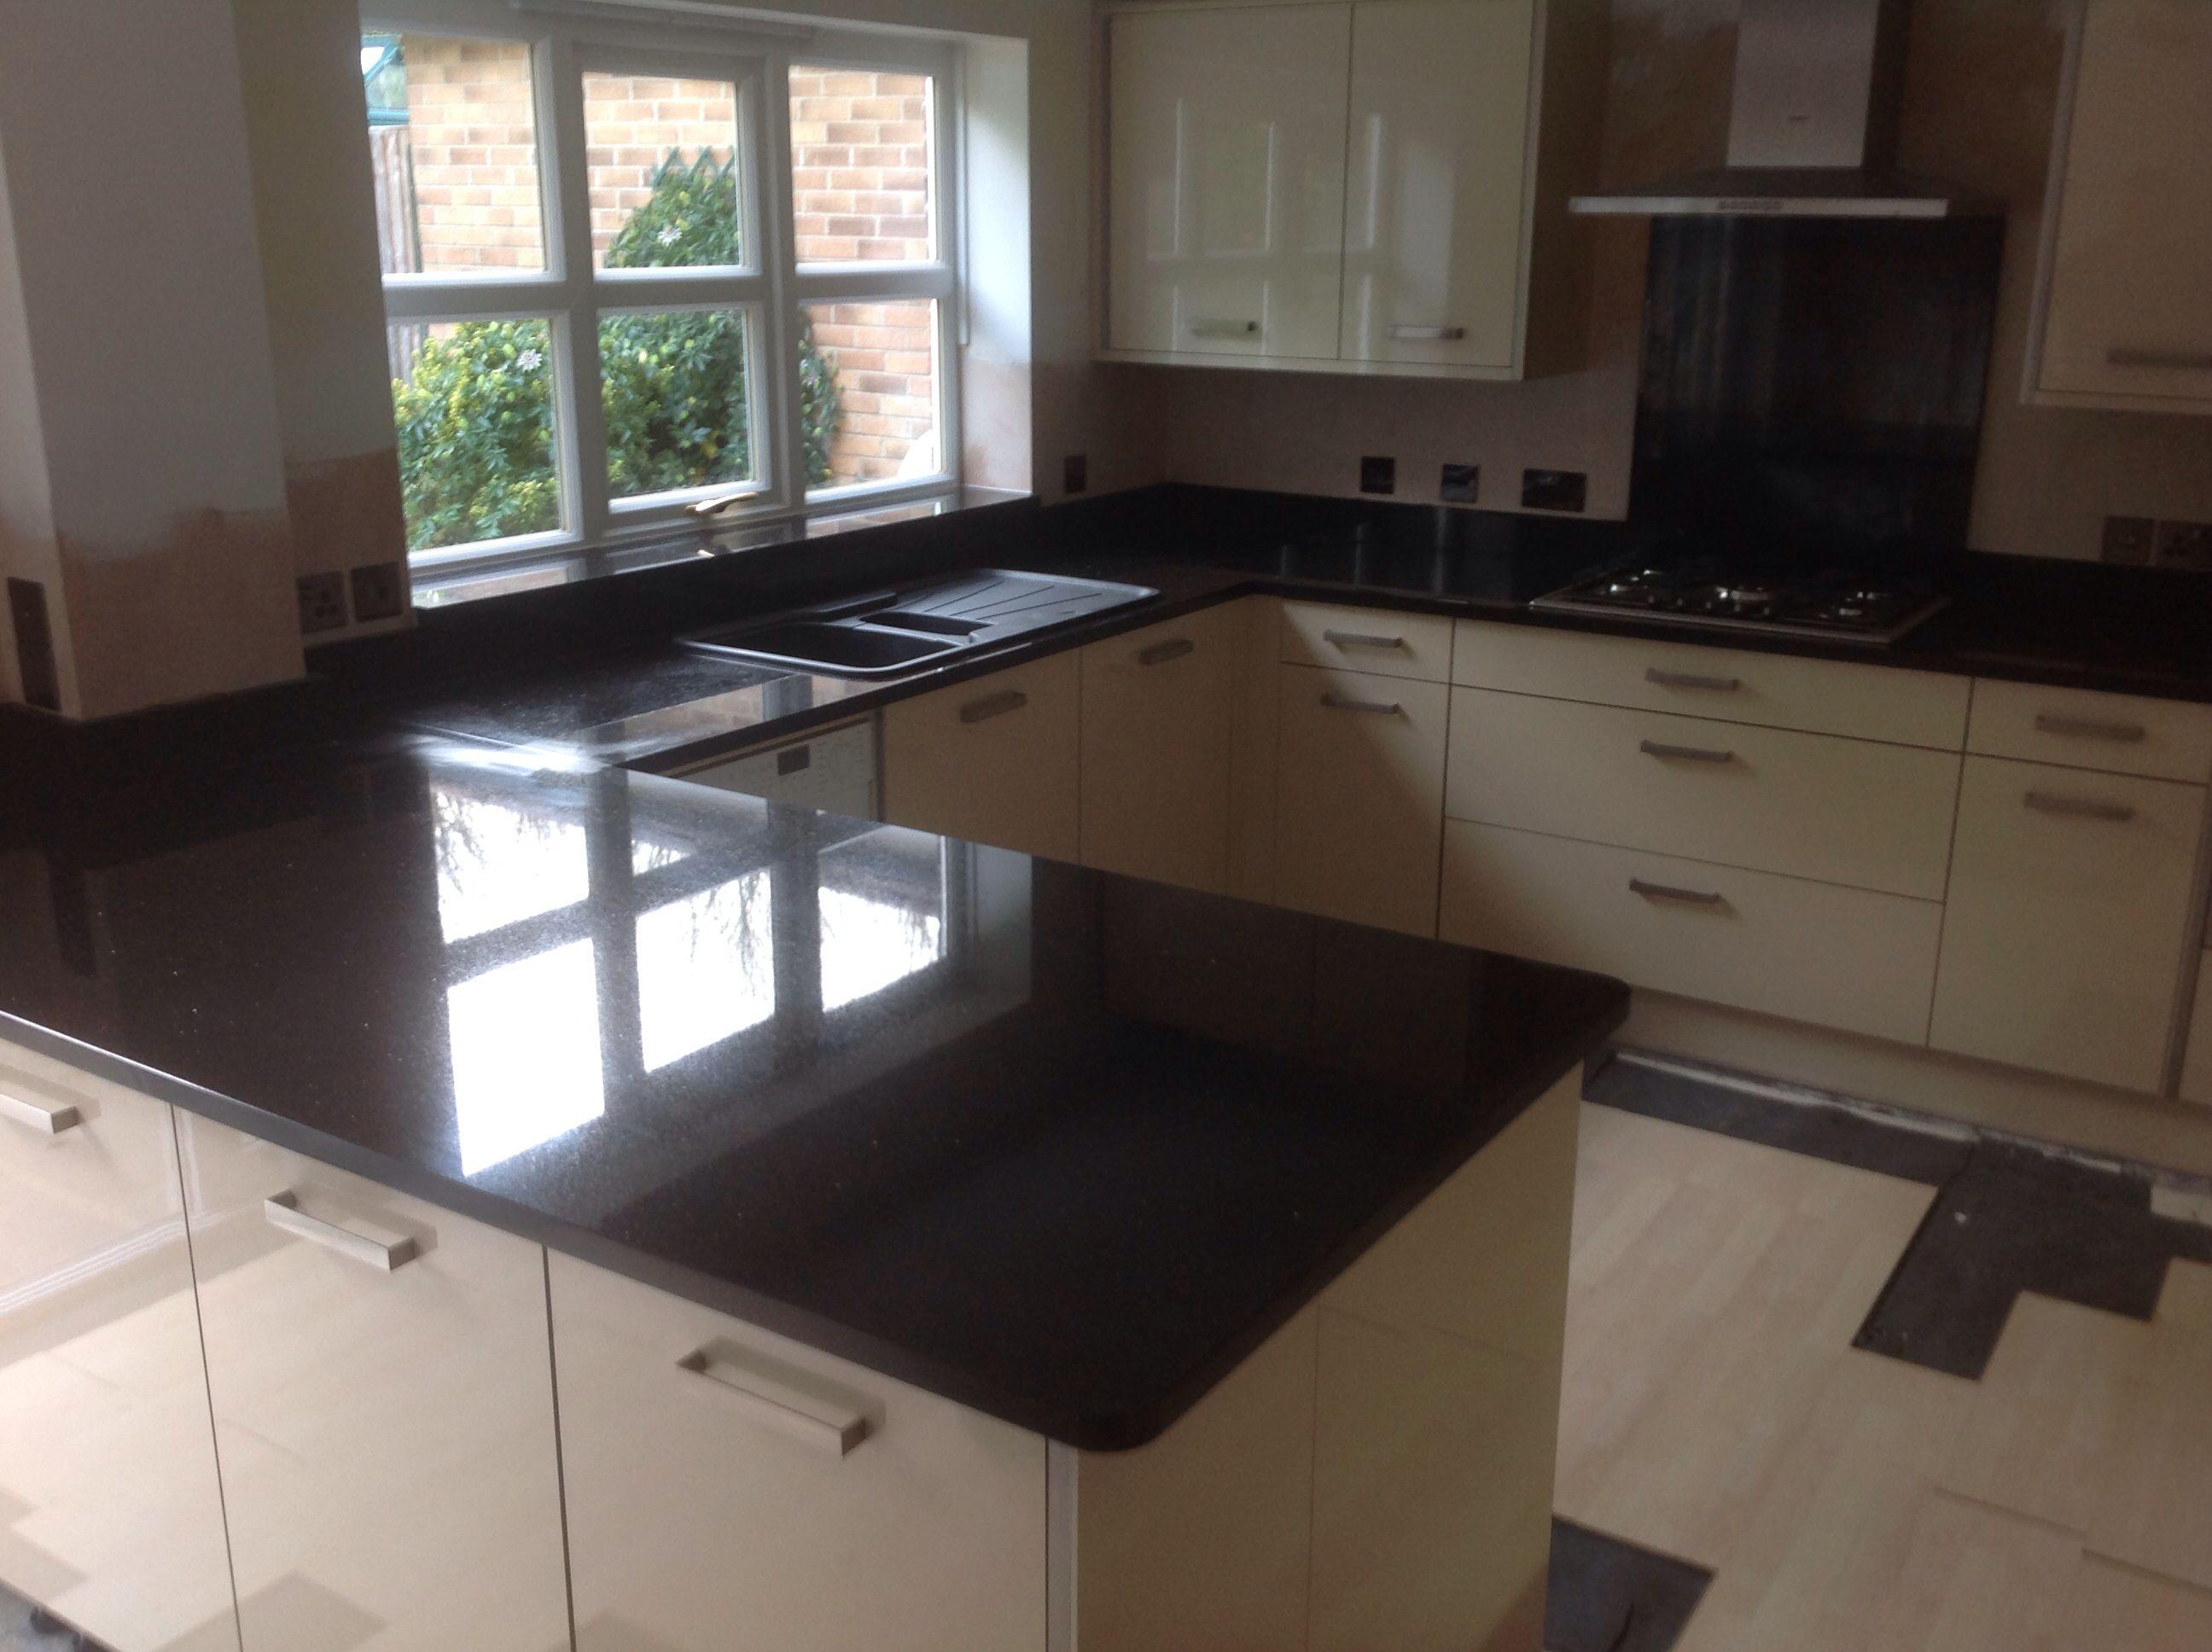 Zimbabwe Black Granite Worktops Granite Worktops Pinterest Granite Worktops Black Granite